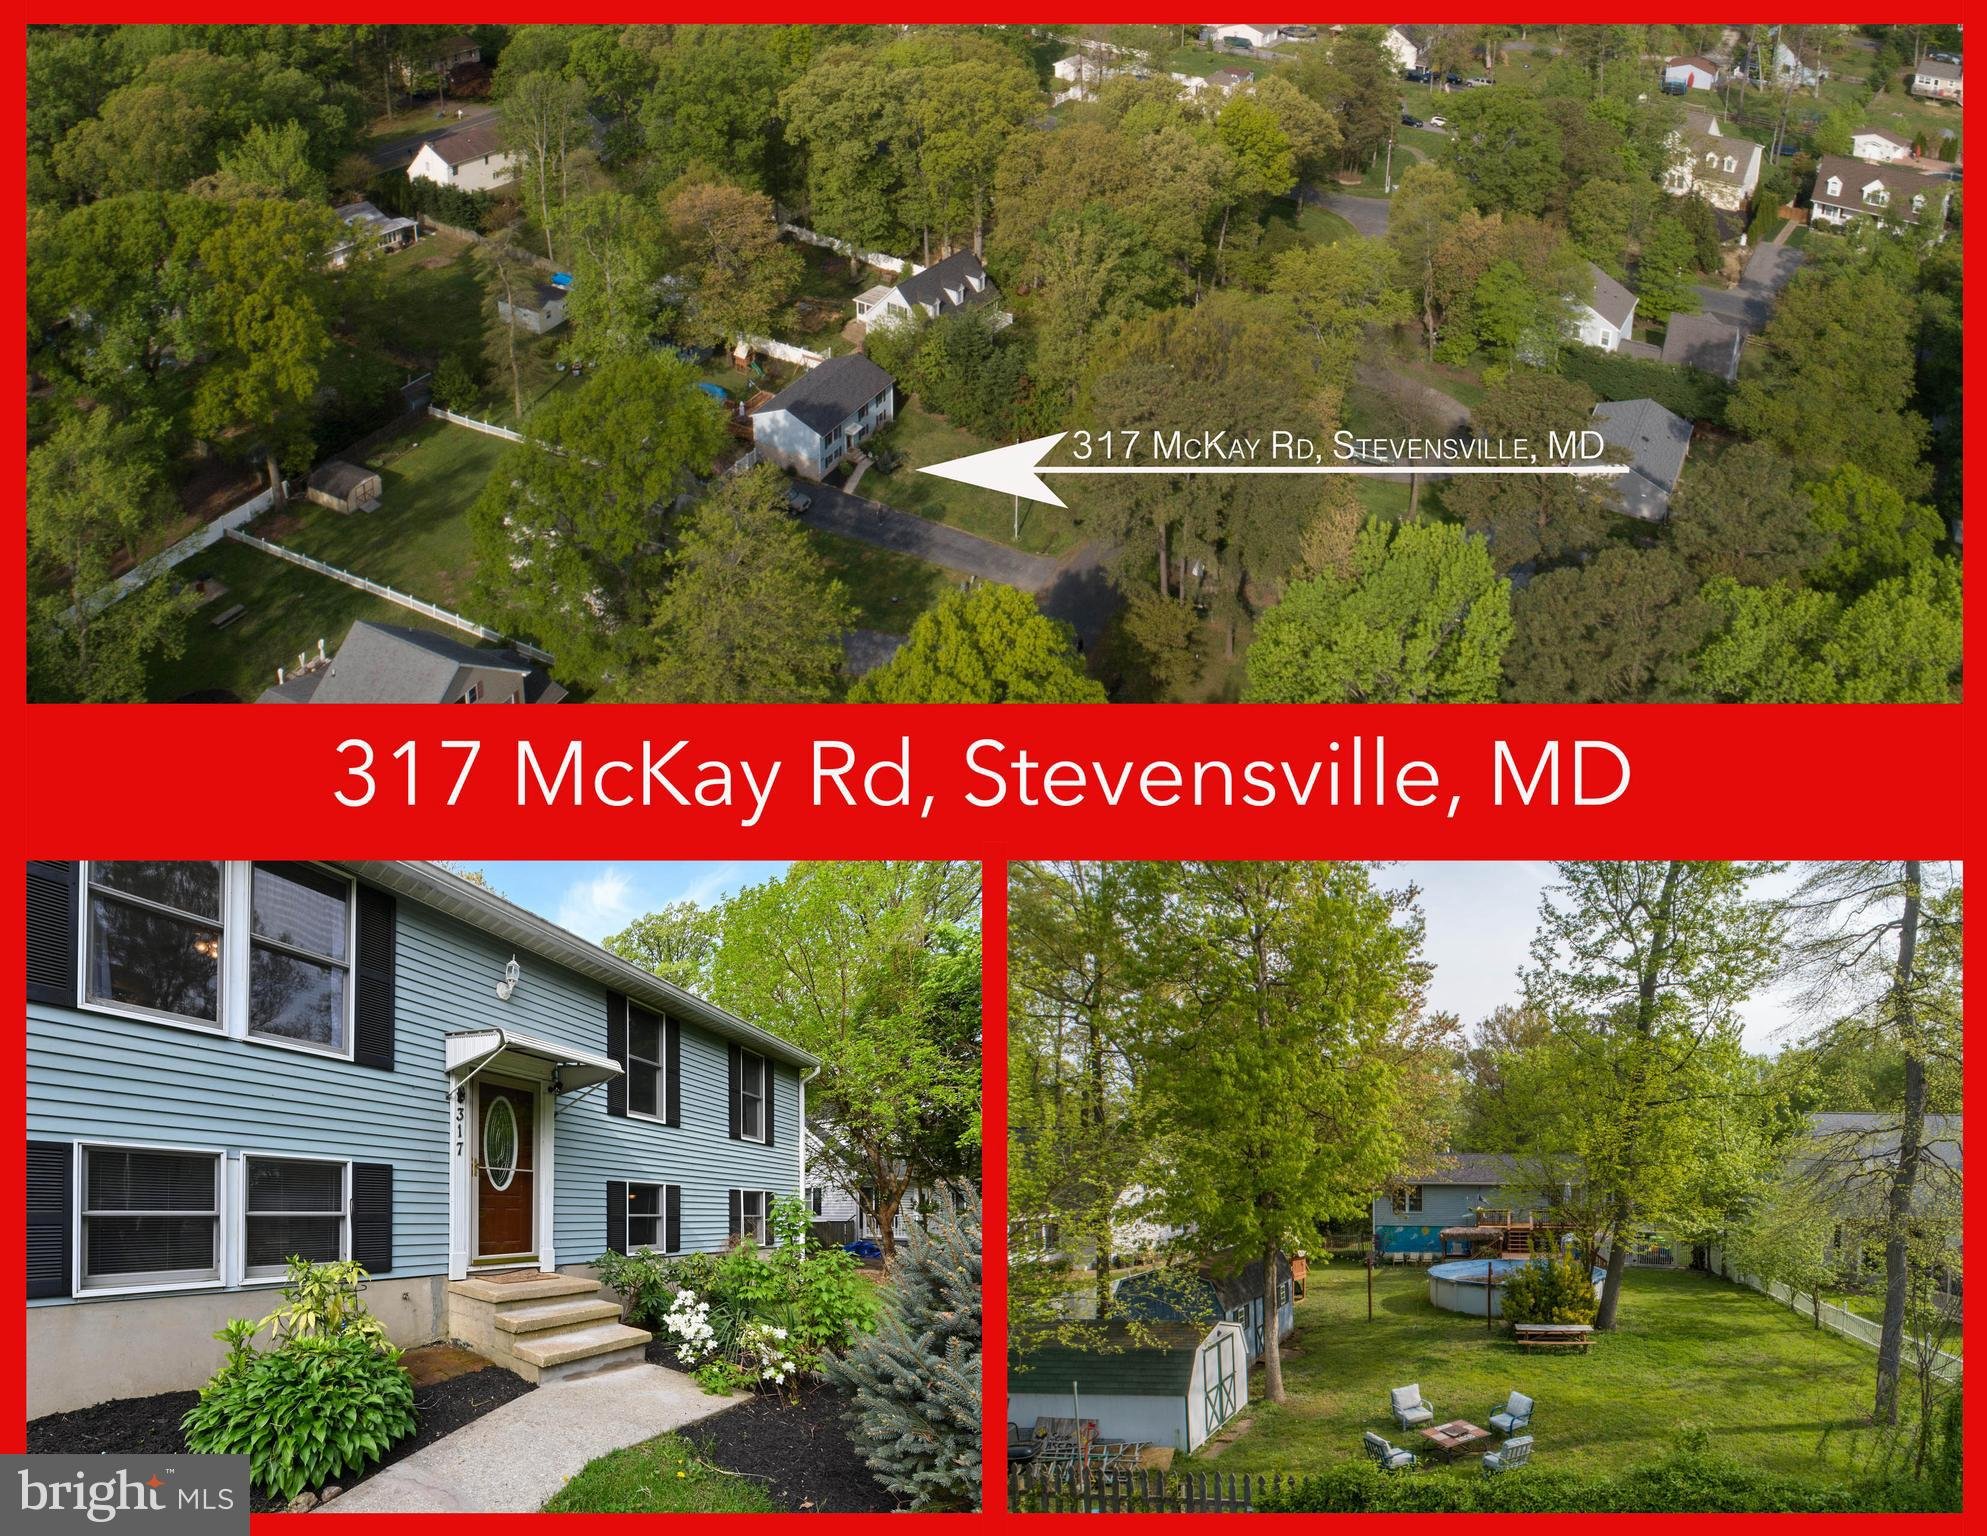 Lovely split-foyer in Bay City * Located just 2 blocks from the Chesapeake Bay and 1 block from Broa